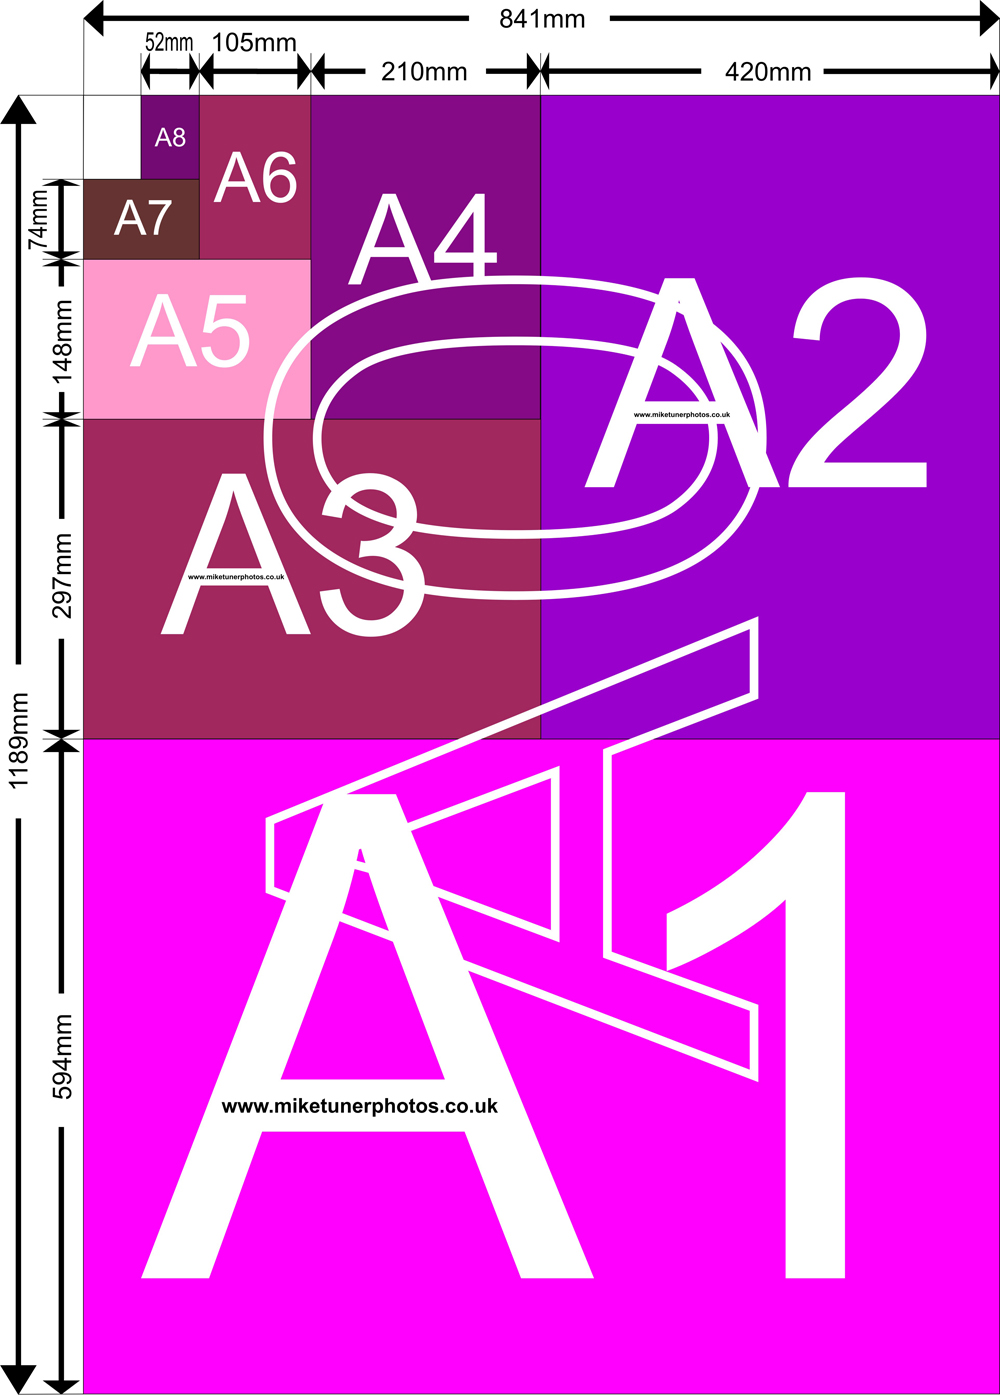 paper sizes from A0-A8